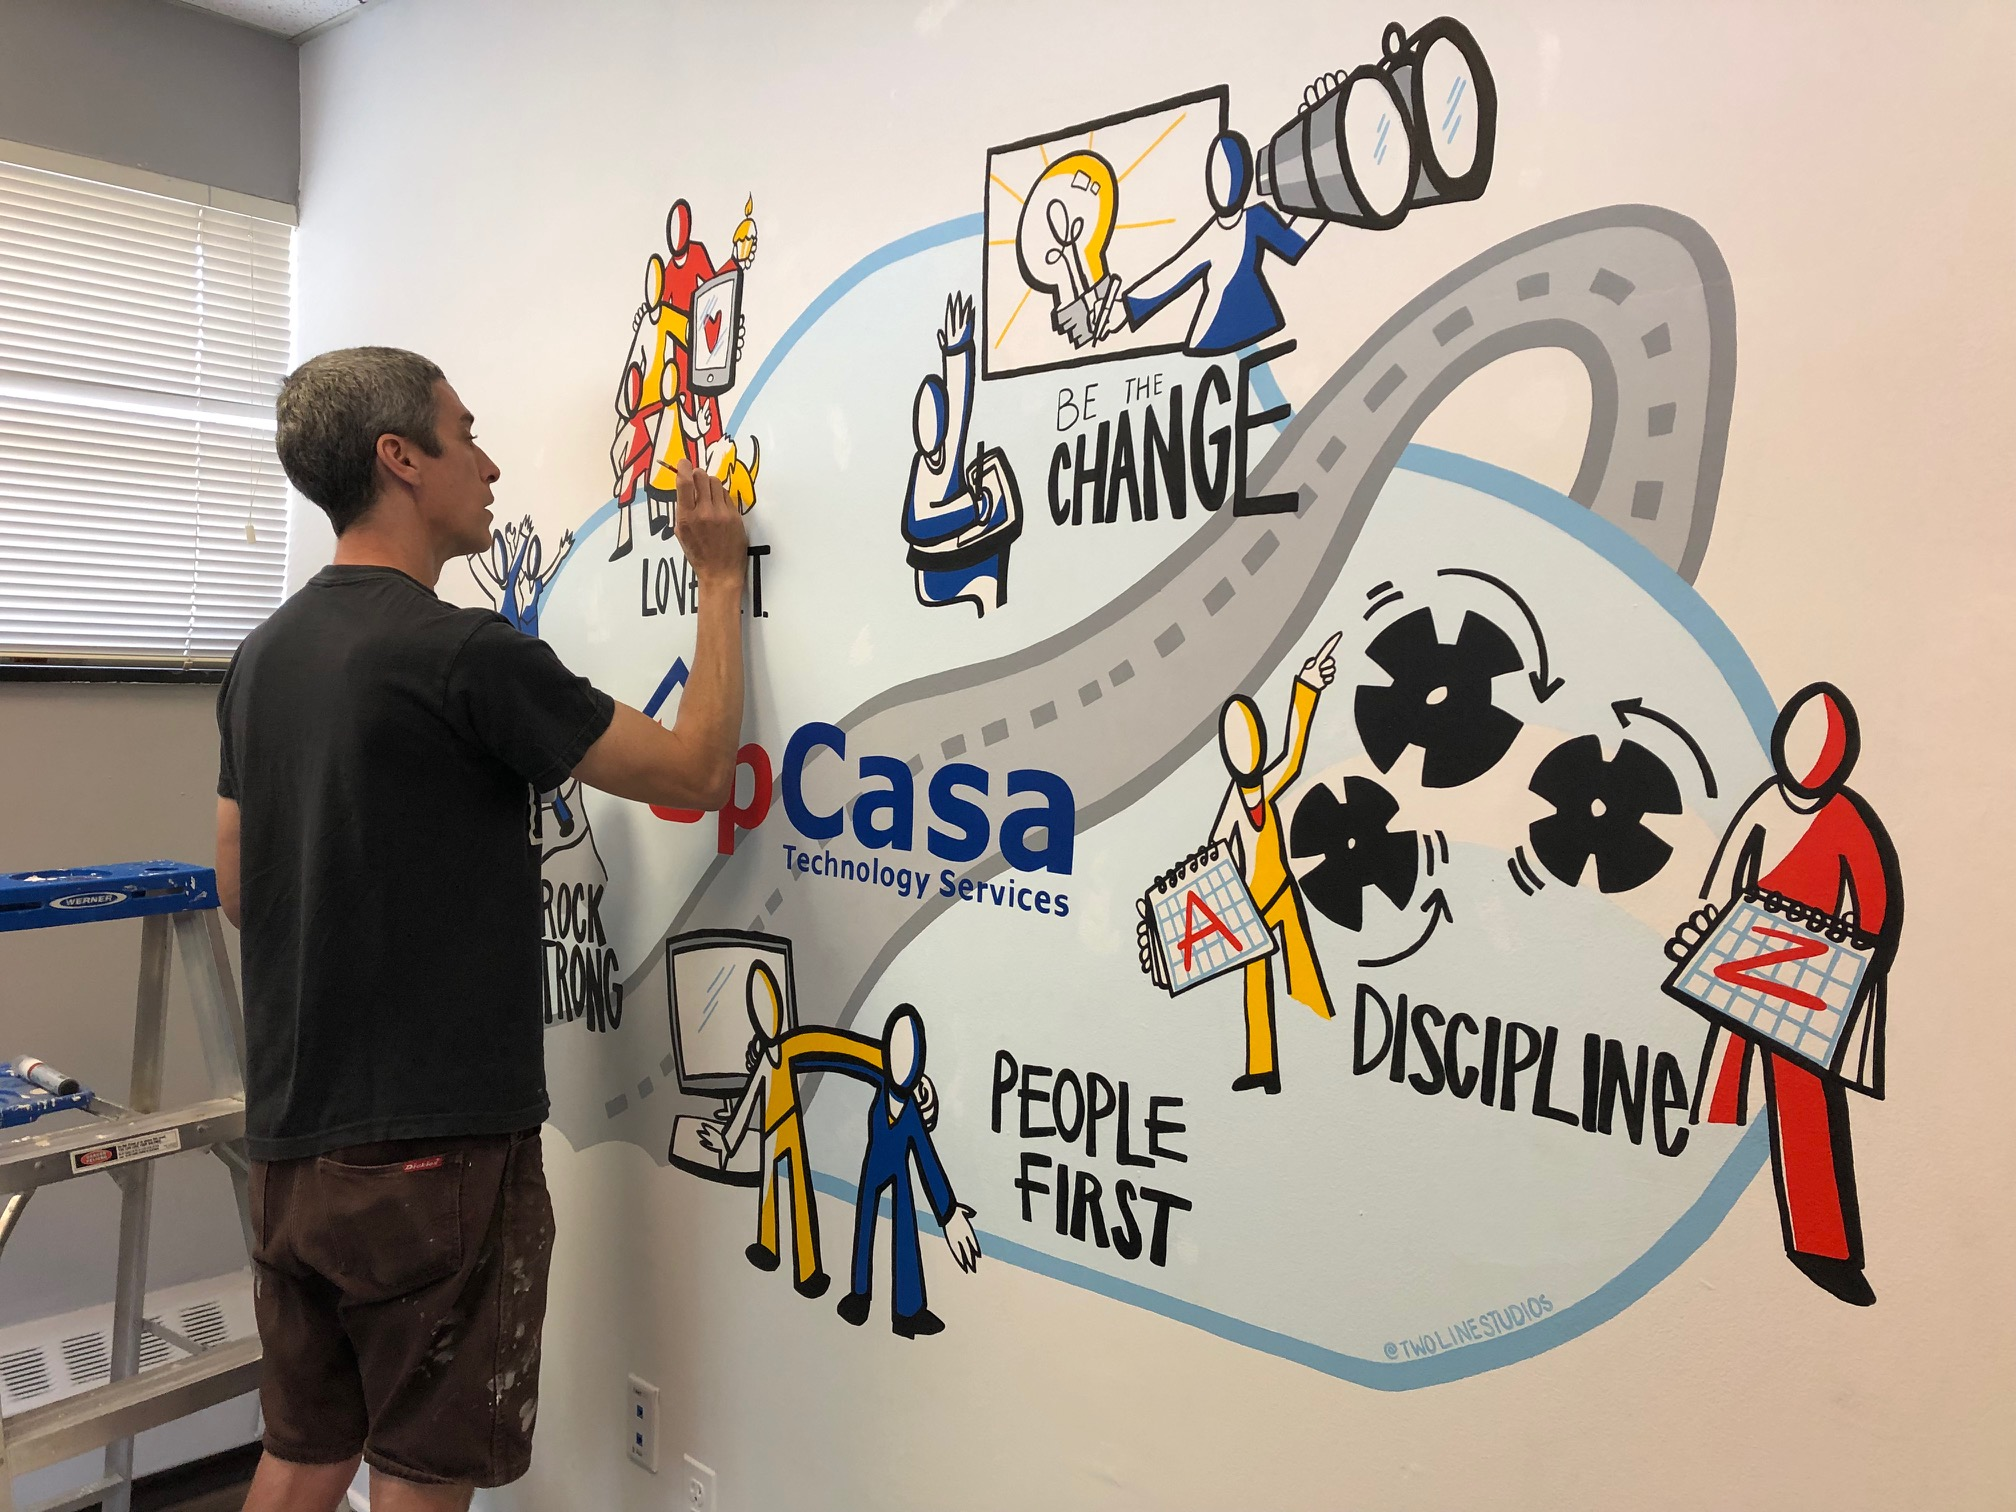 UpCasa Technology Services   ;  550 Sylvan Ave, Englewood Cliffs, NJ - Mural painted in the company conference room - (2019)